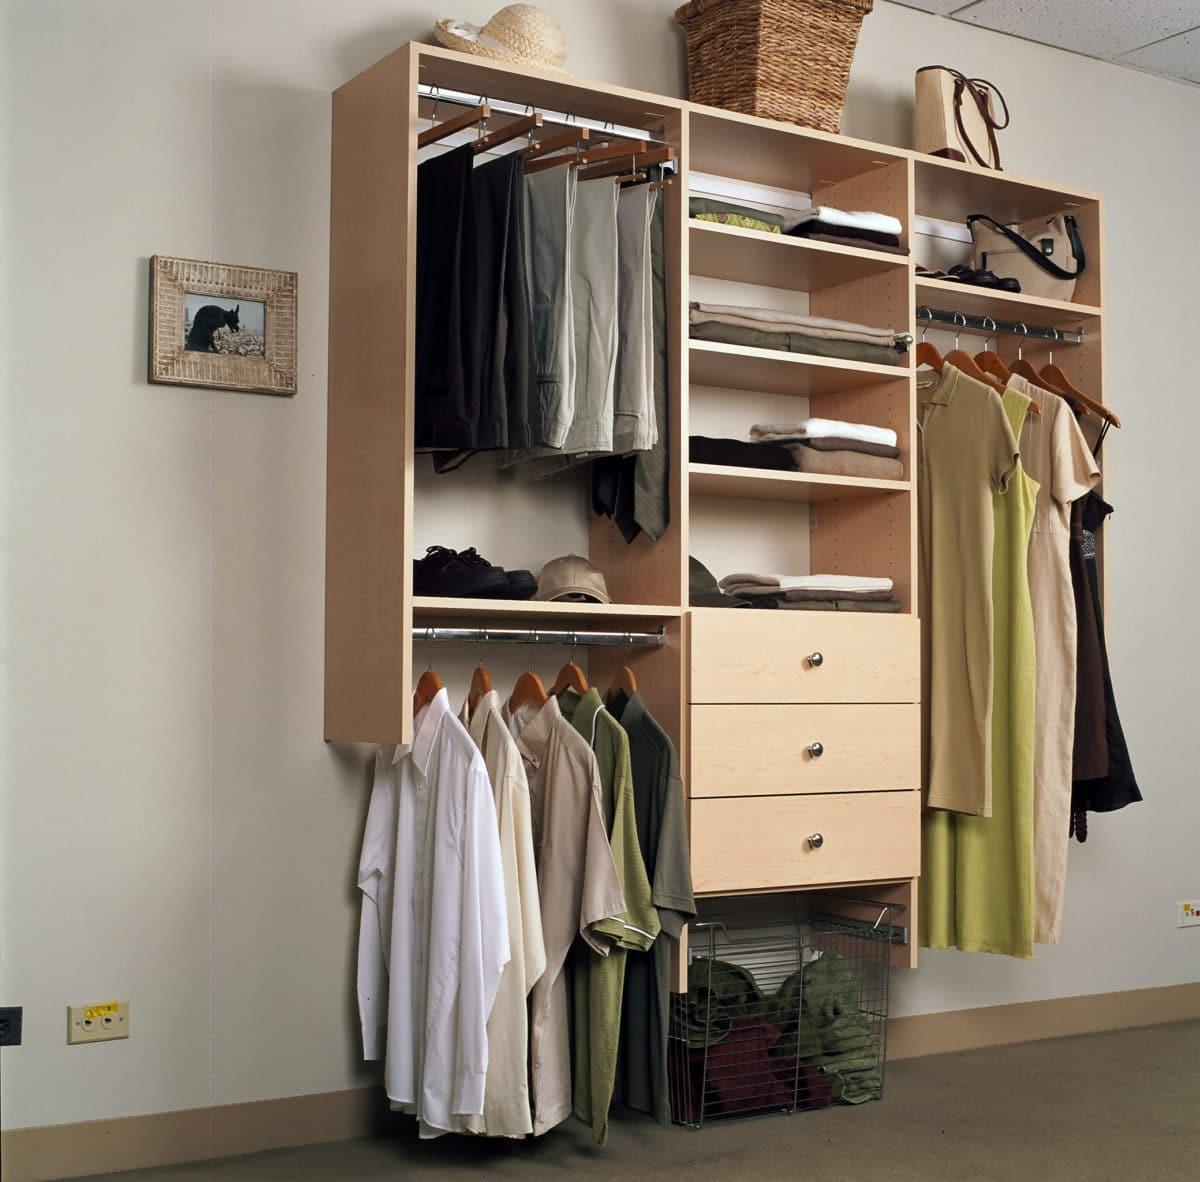 A SIMPLE REACH IN CLOSET SYSTEM CAN DOUBLE YOUR STORAGE SPACE